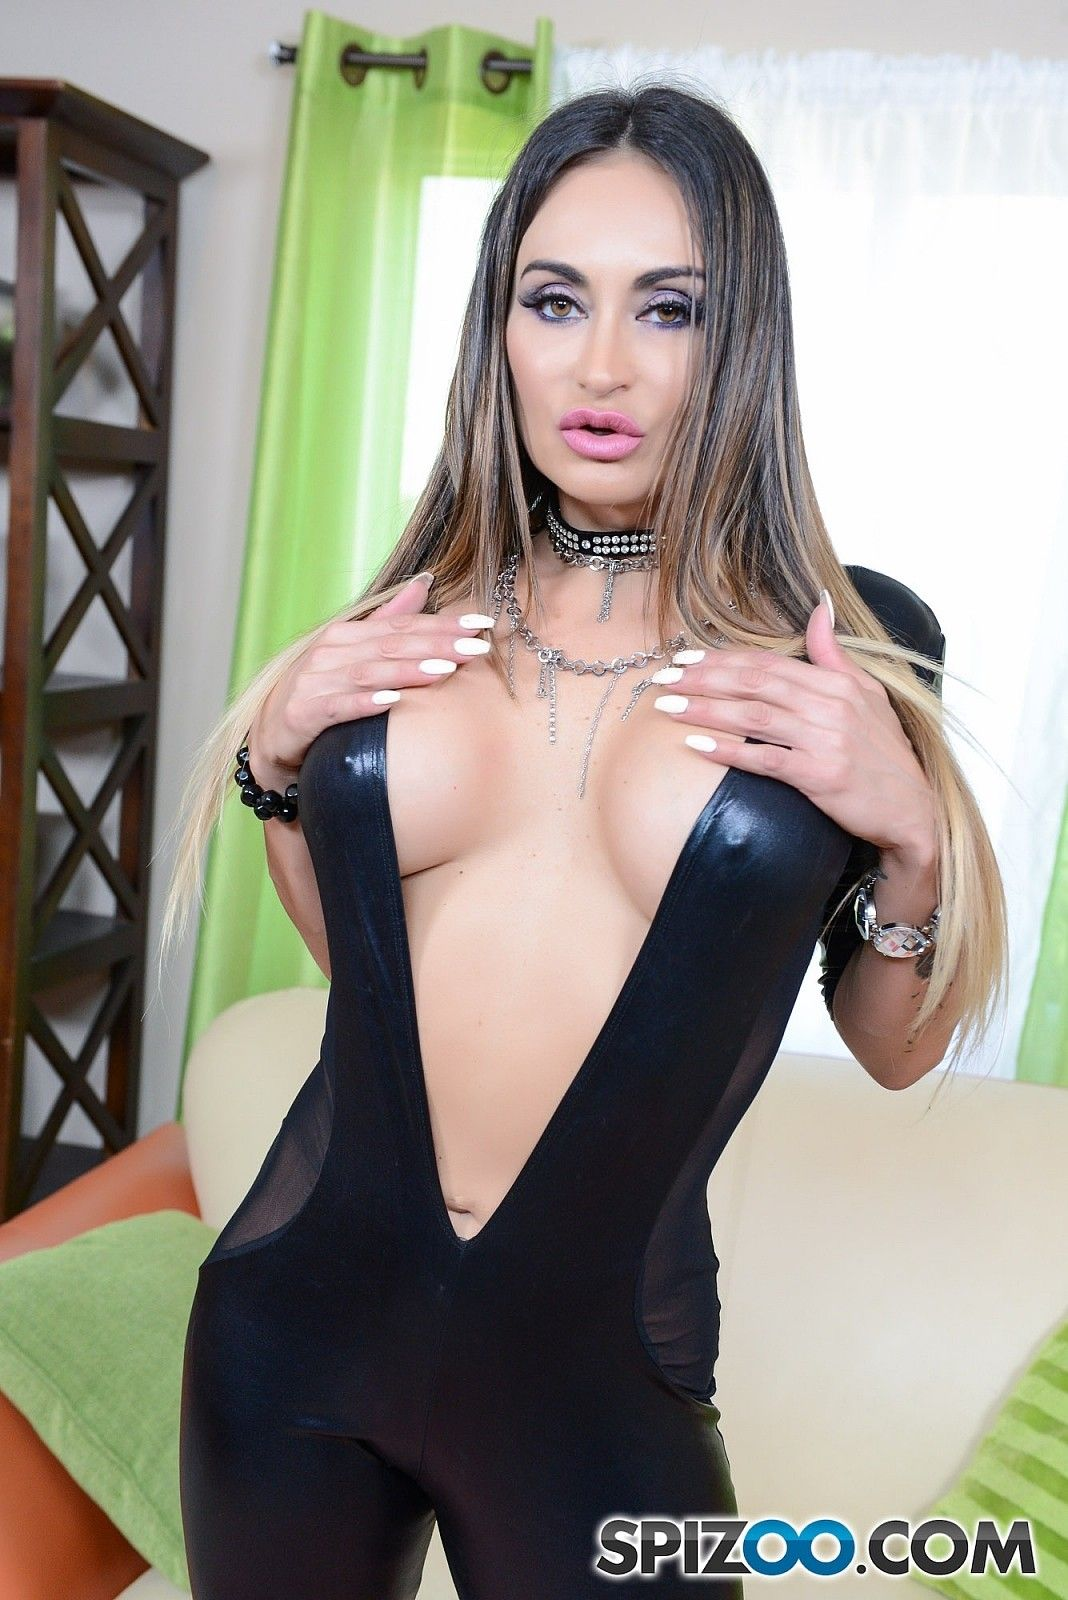 anal-pictures-of-hot-brunettes-in-spandex-tongue-black